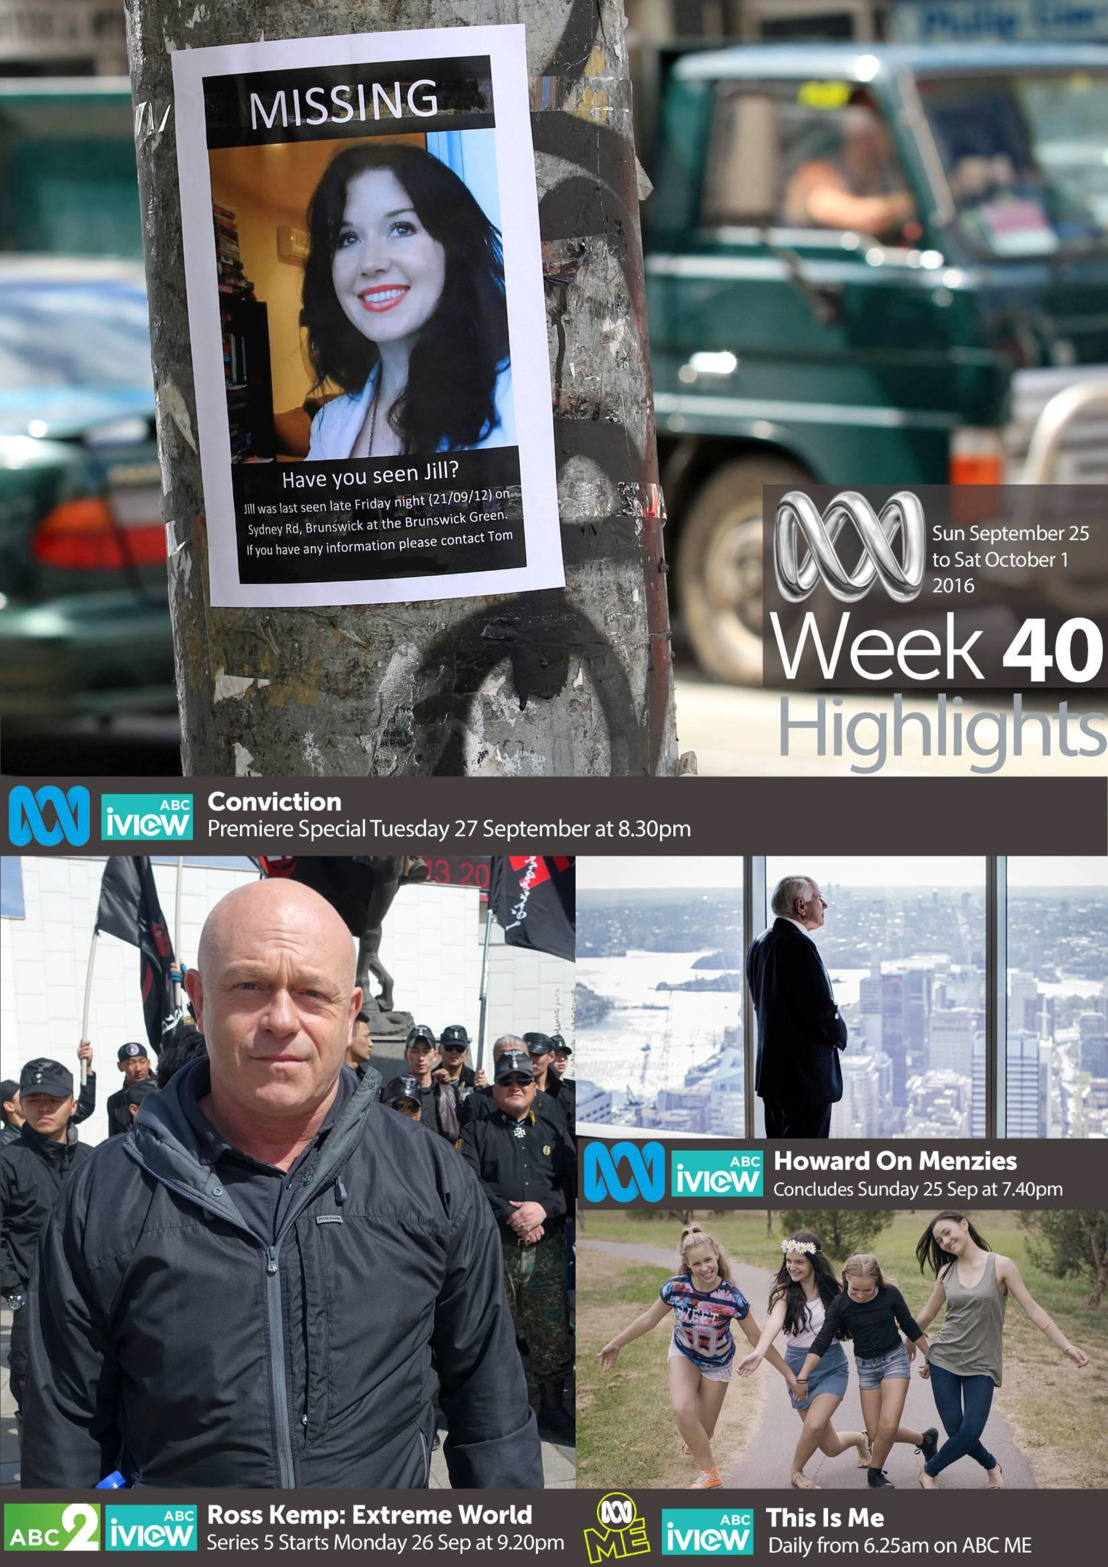 ABC Program Highlights - Week 40